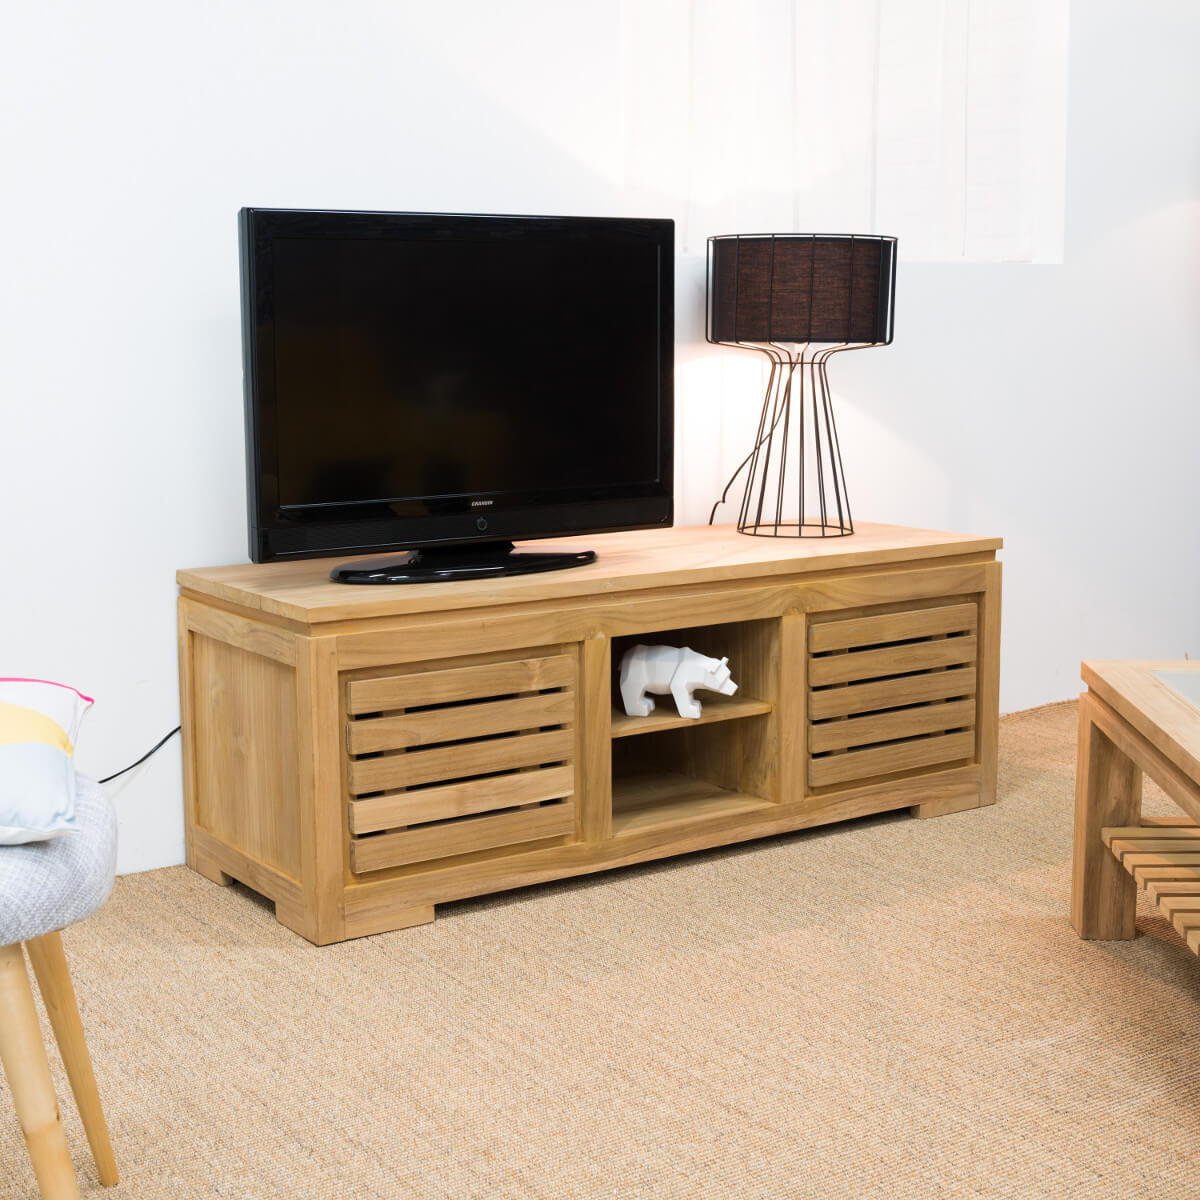 Meuble Tv Teck Meuble Tv Bois Naturel Rectangle Zen 140 Cm # Meuble Tv Style Campagne